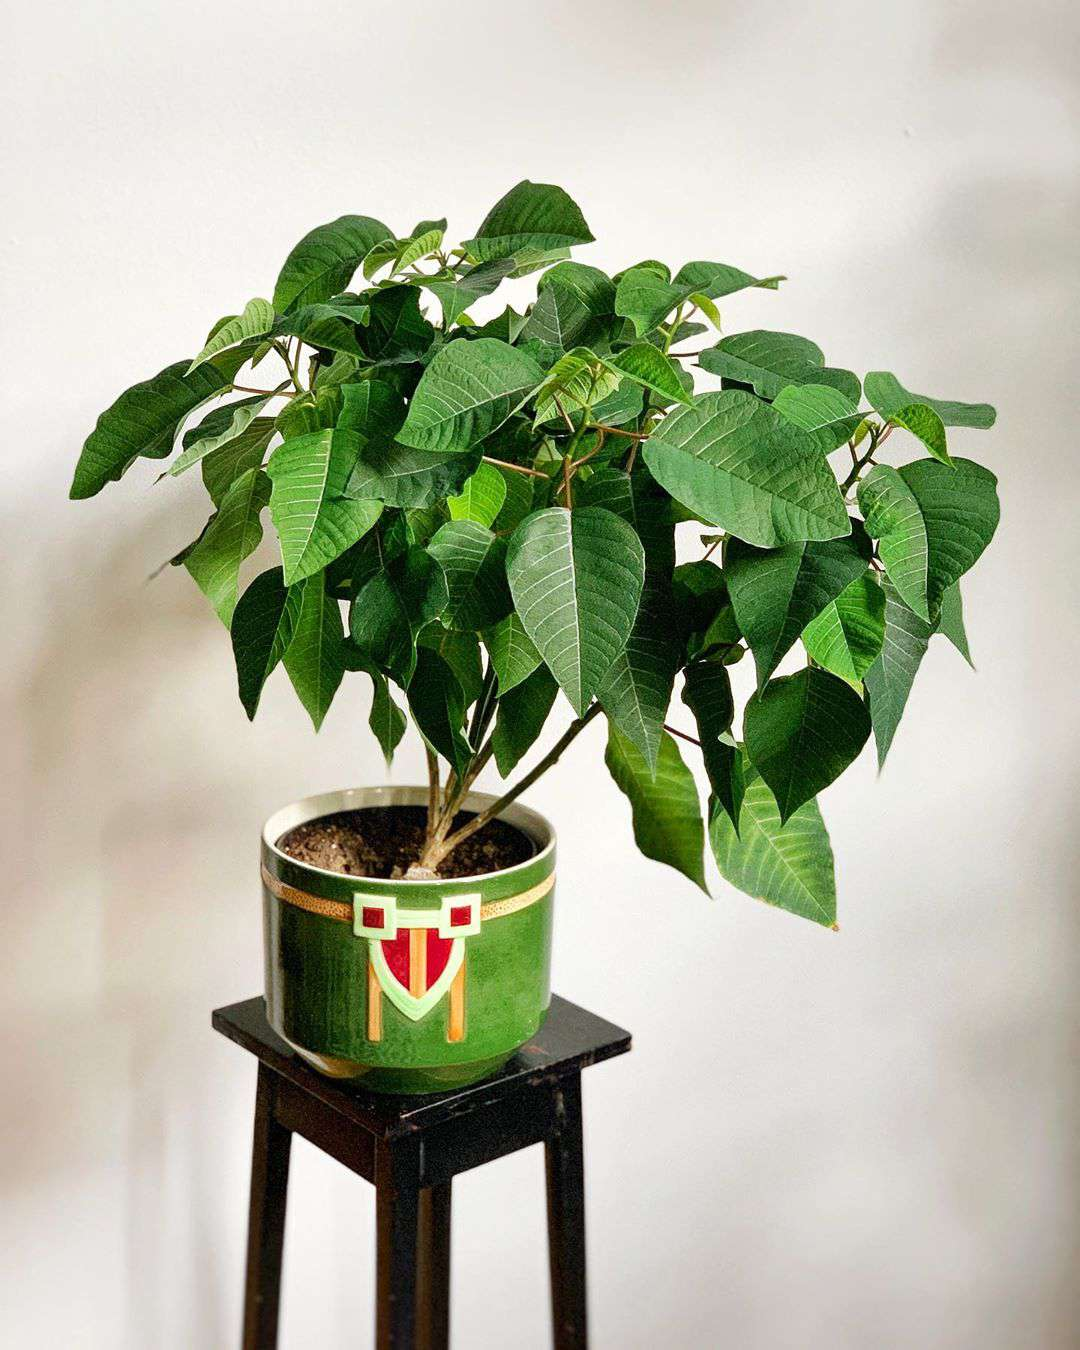 Potted poinsettia with green leaves